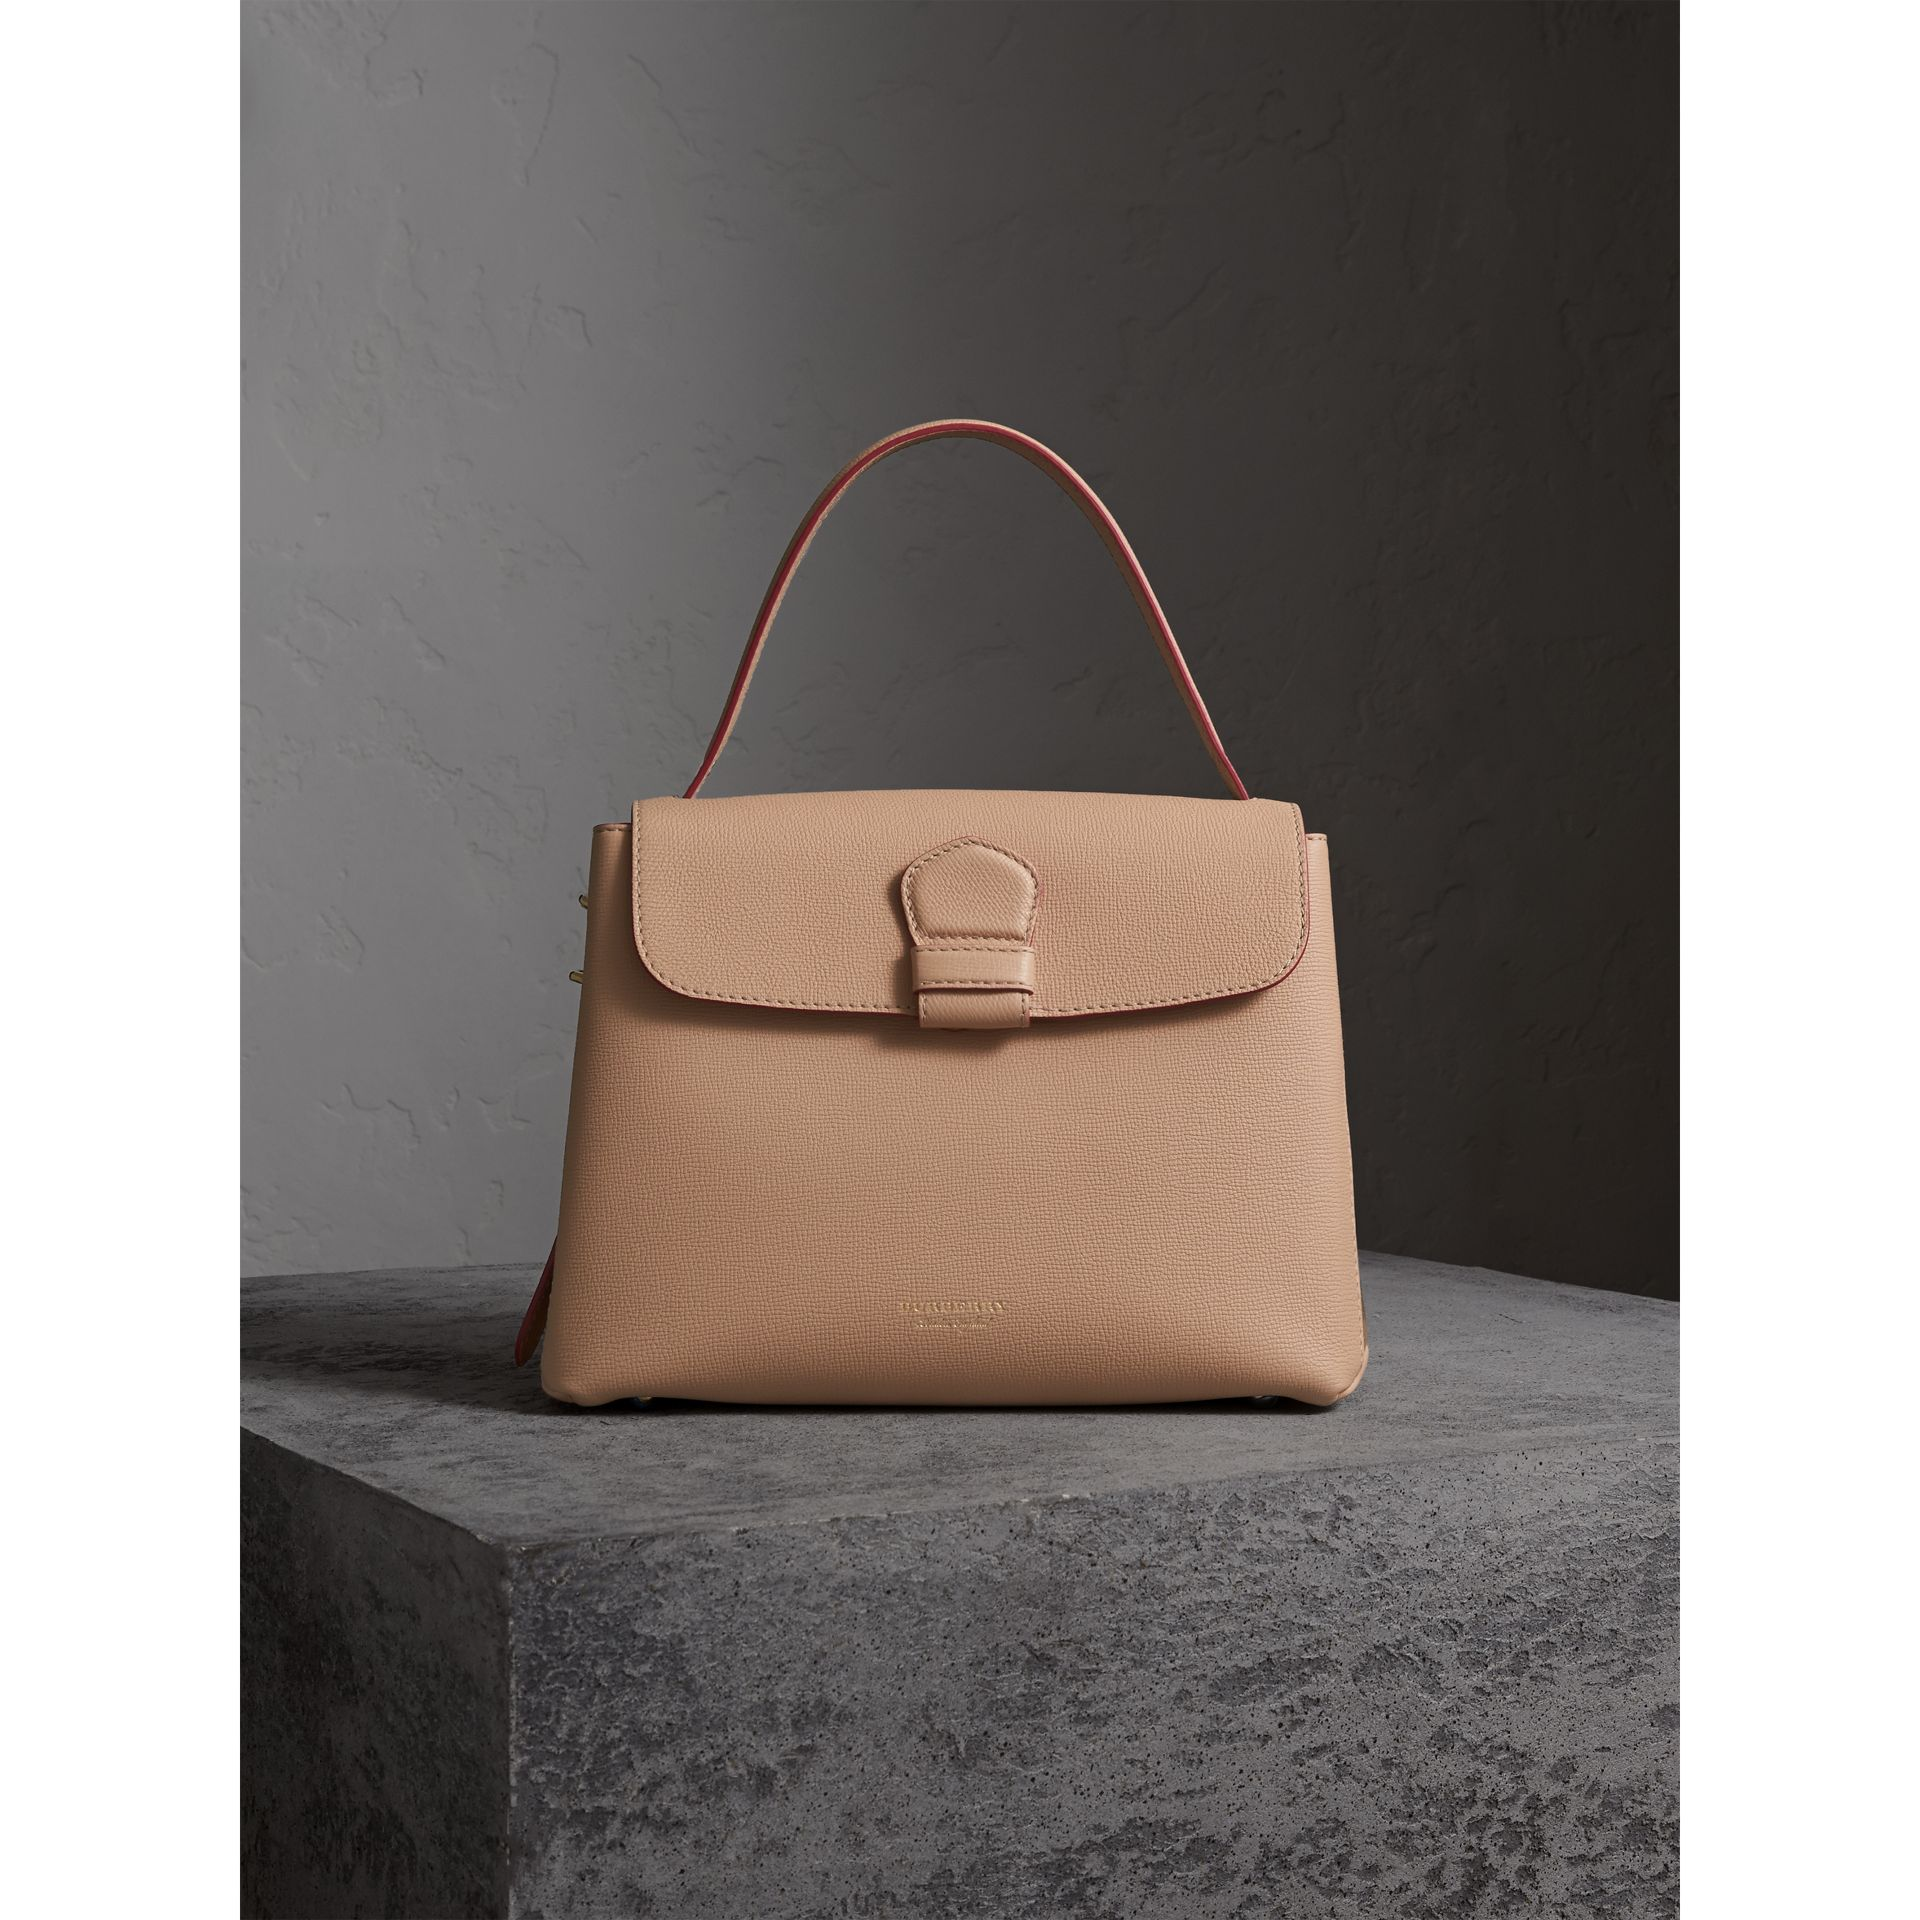 Medium Grainy Leather and House Check Tote Bag in Pale Apricot - Women | Burberry - gallery image 8